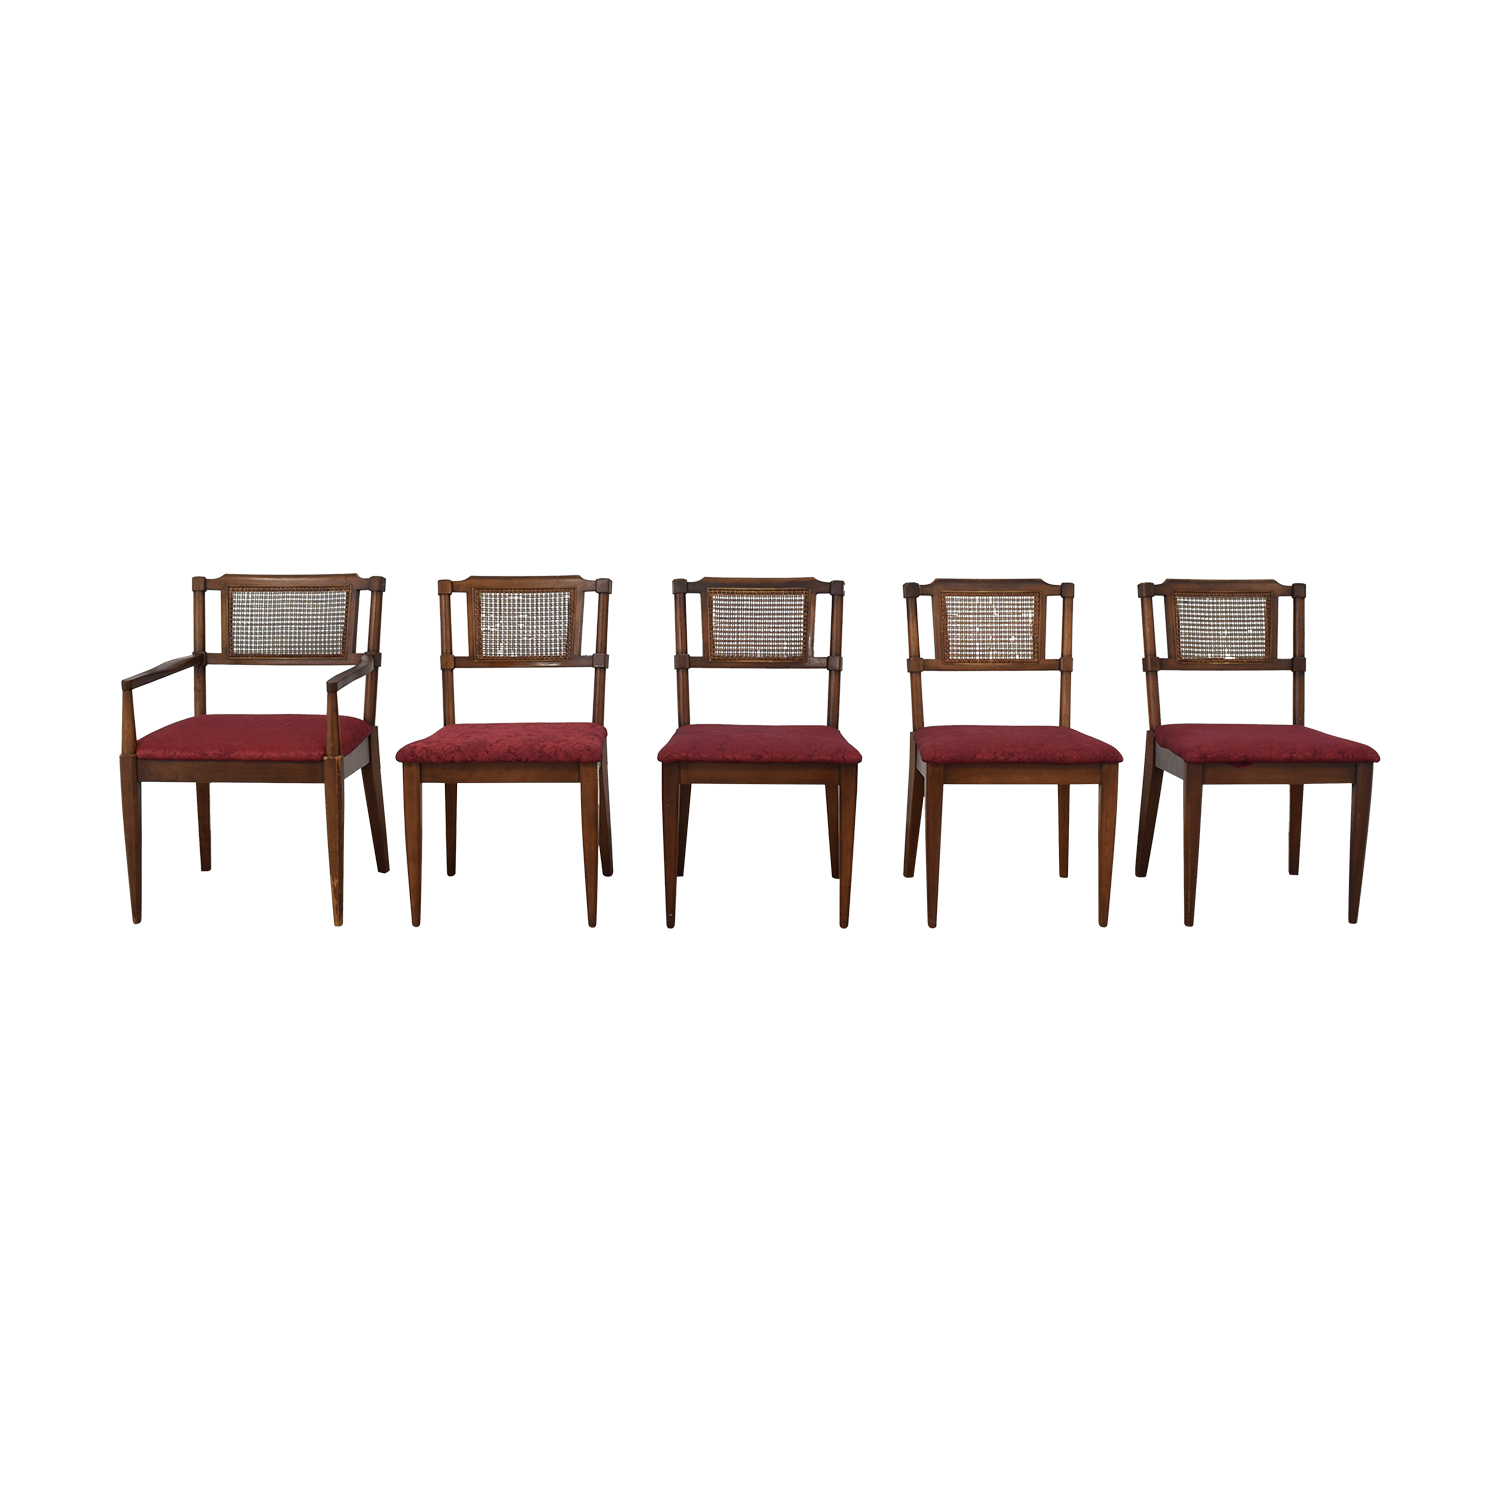 R & E Gordon Furniture Co. R & E Gordon Furniture Co. Dining Chairs Chairs